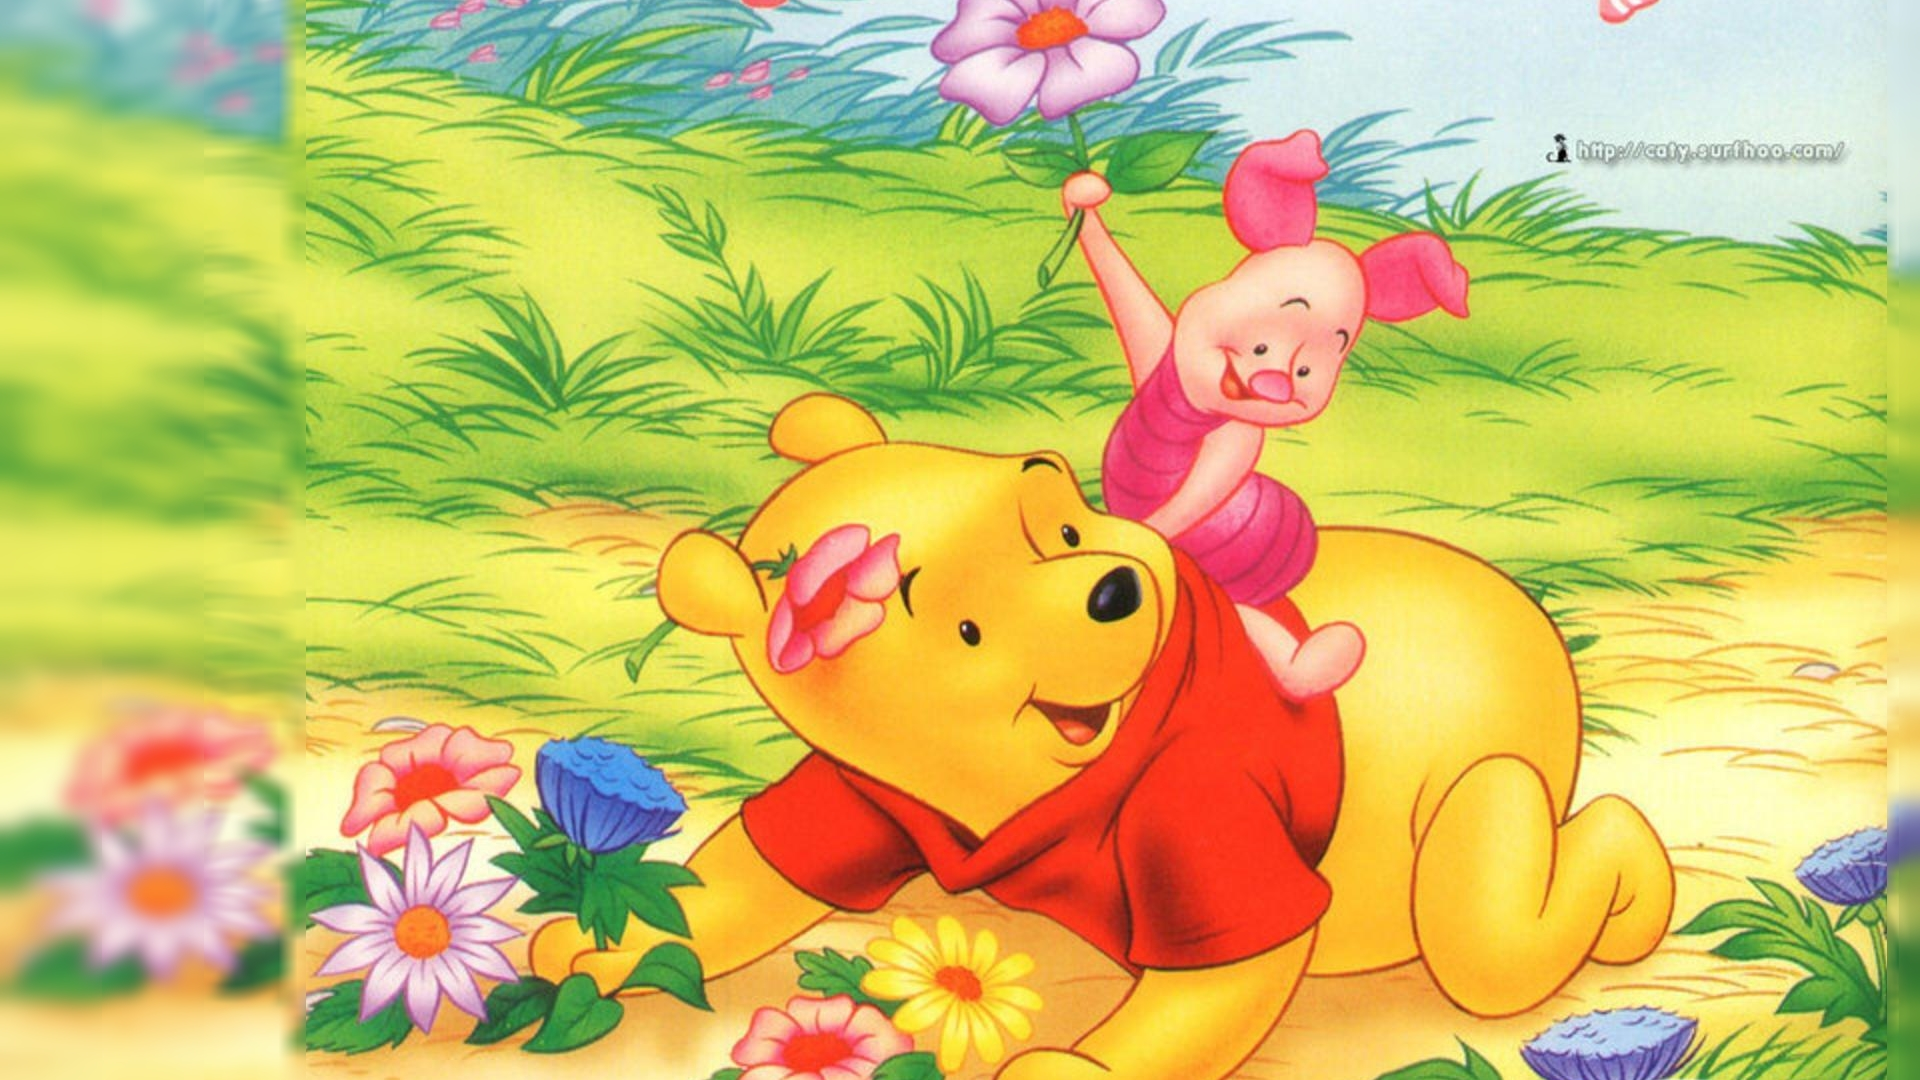 Winnie the pooh full hd wallpaper and background image 1920x1080 tv show winnie the pooh wallpaper voltagebd Images